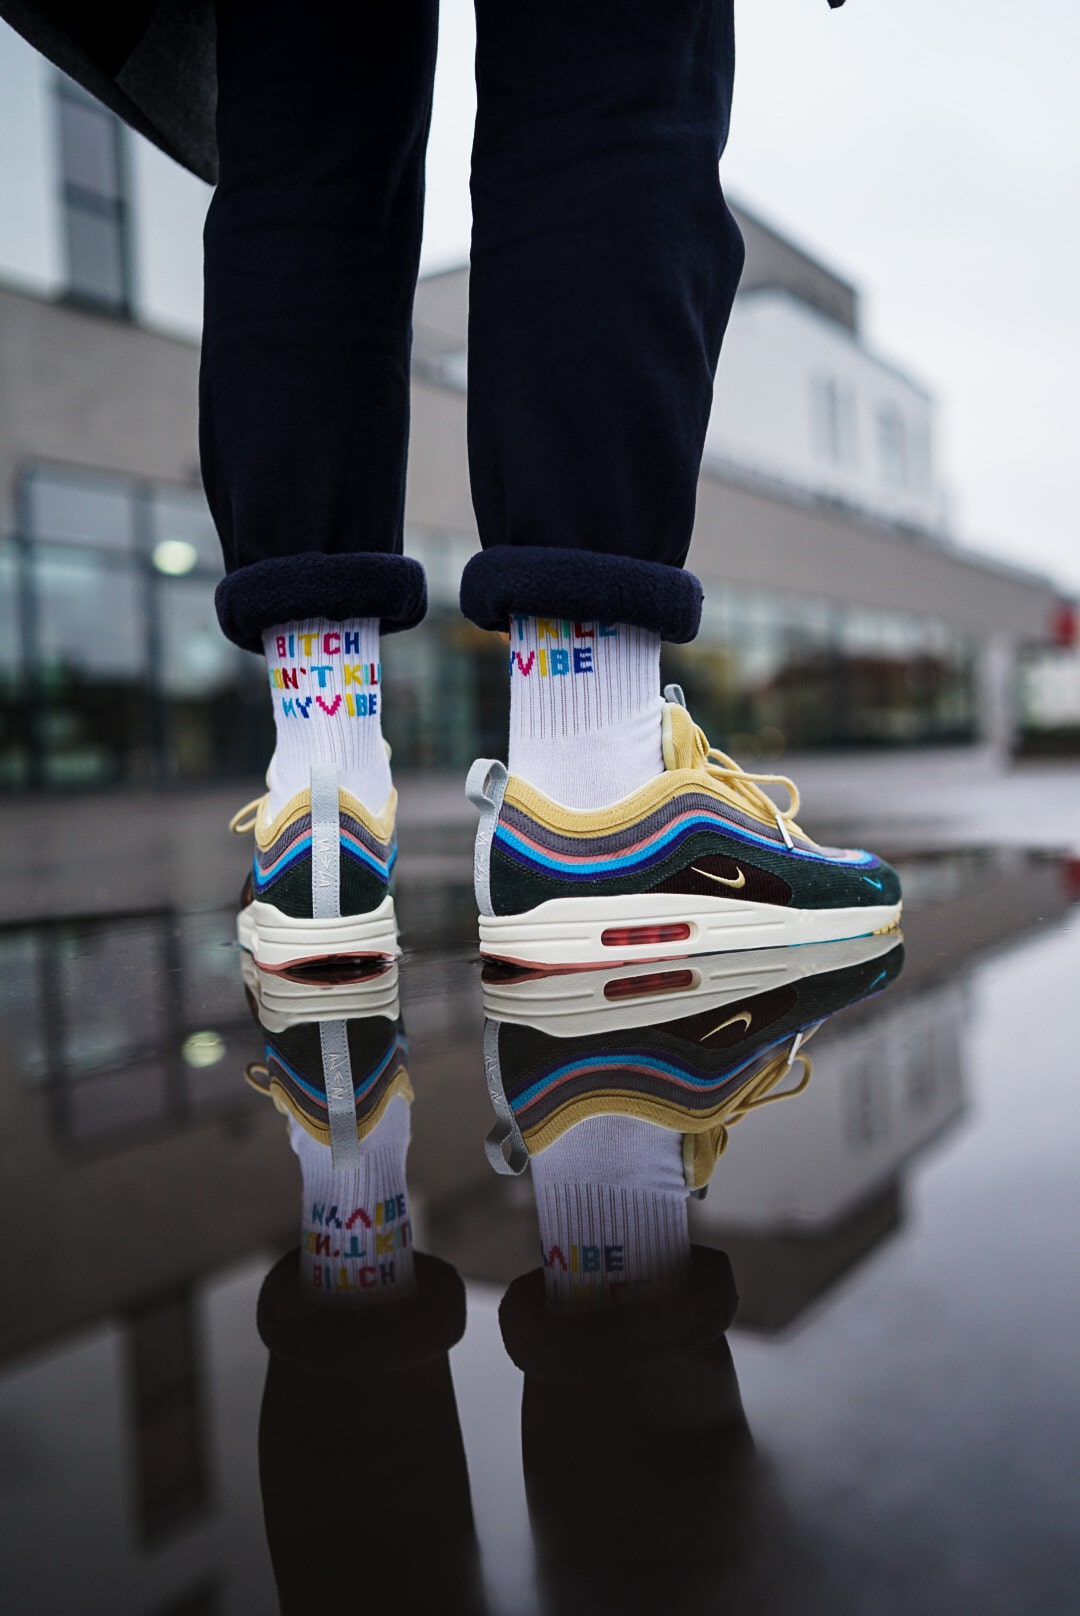 Nike Air Max 1 Wotherspoon